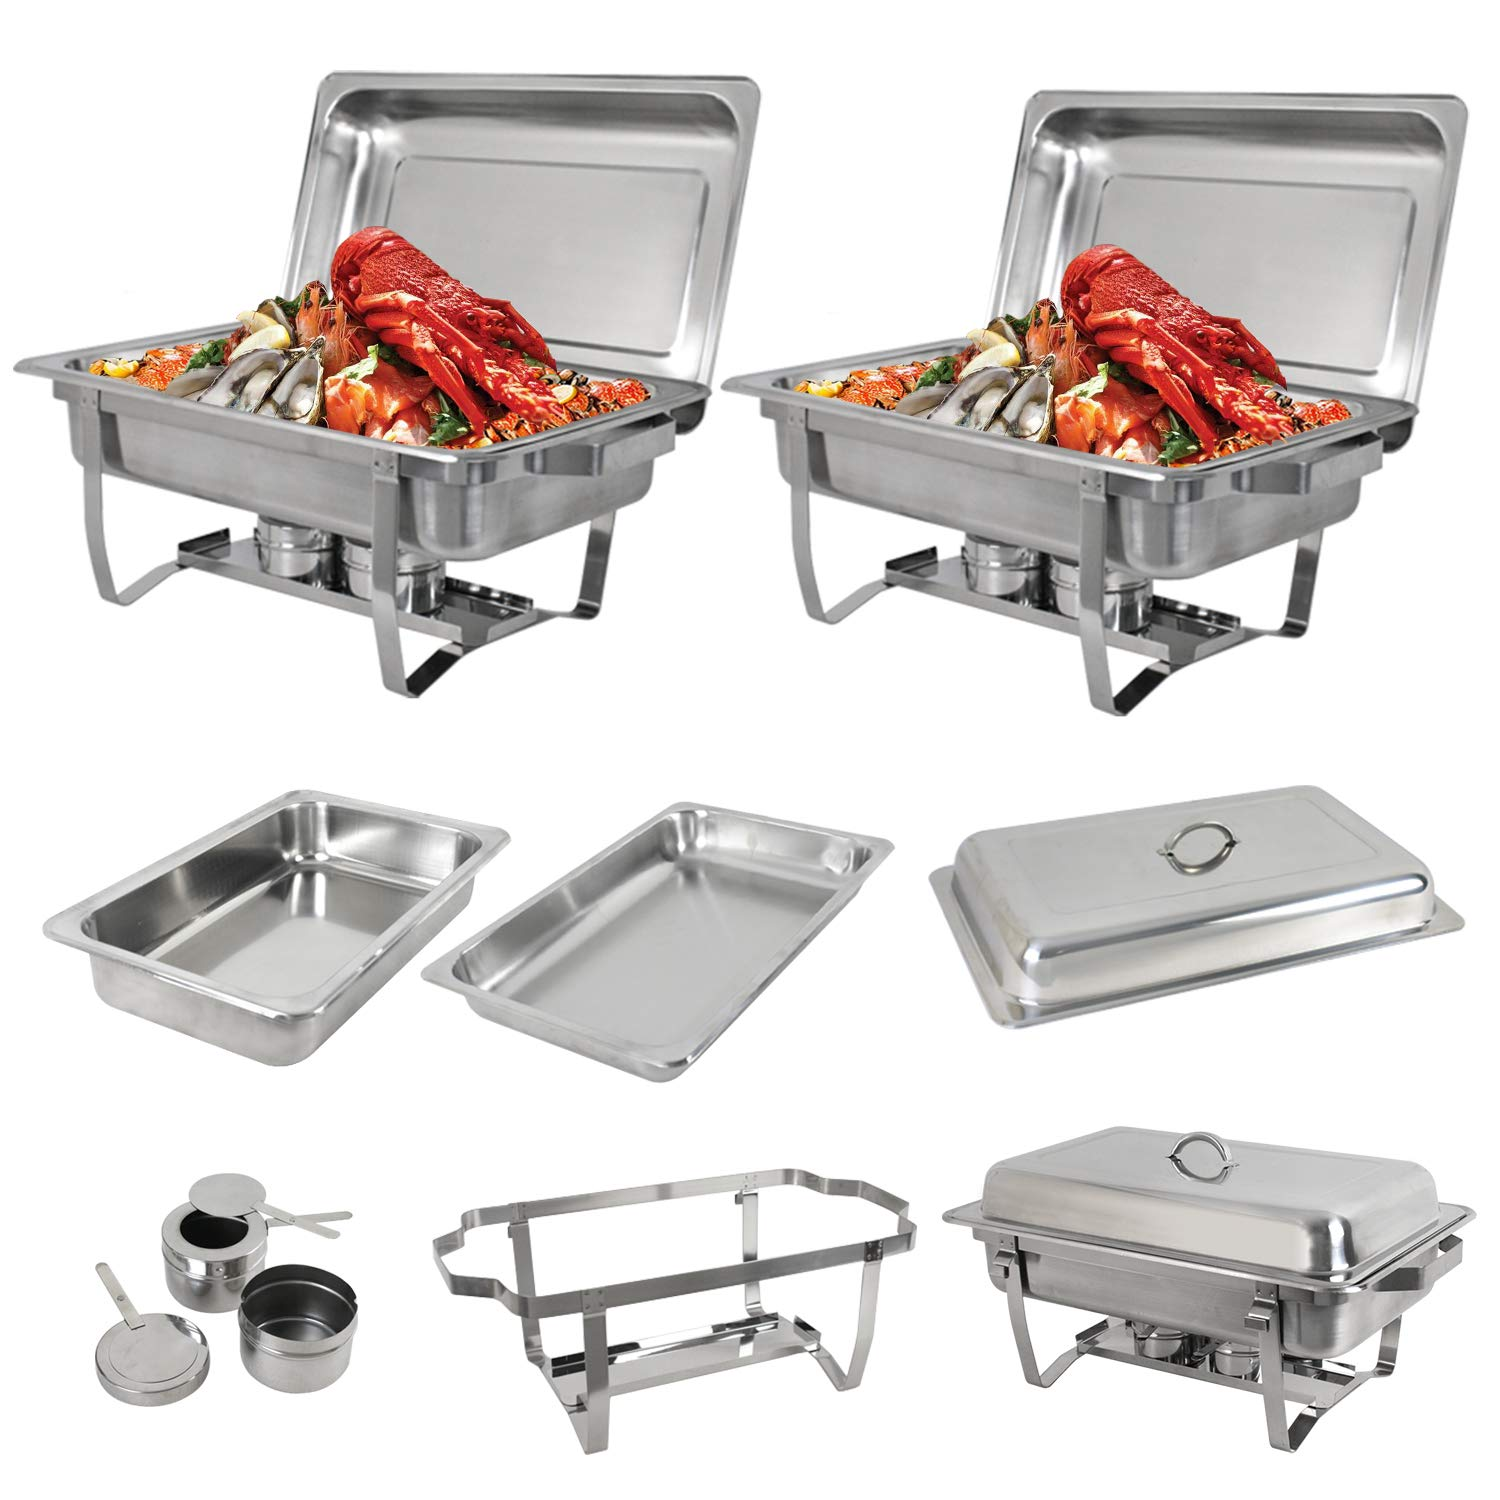 SUPER DEAL 8 Qt Stainless Steel 2 Pack Full Size Chafer Dish w/Water Pan, Food Pan, Fuel Holder and Lid For Buffet/Weddings/Parties/Banquets/Catering Events (2) by SUPER DEAL